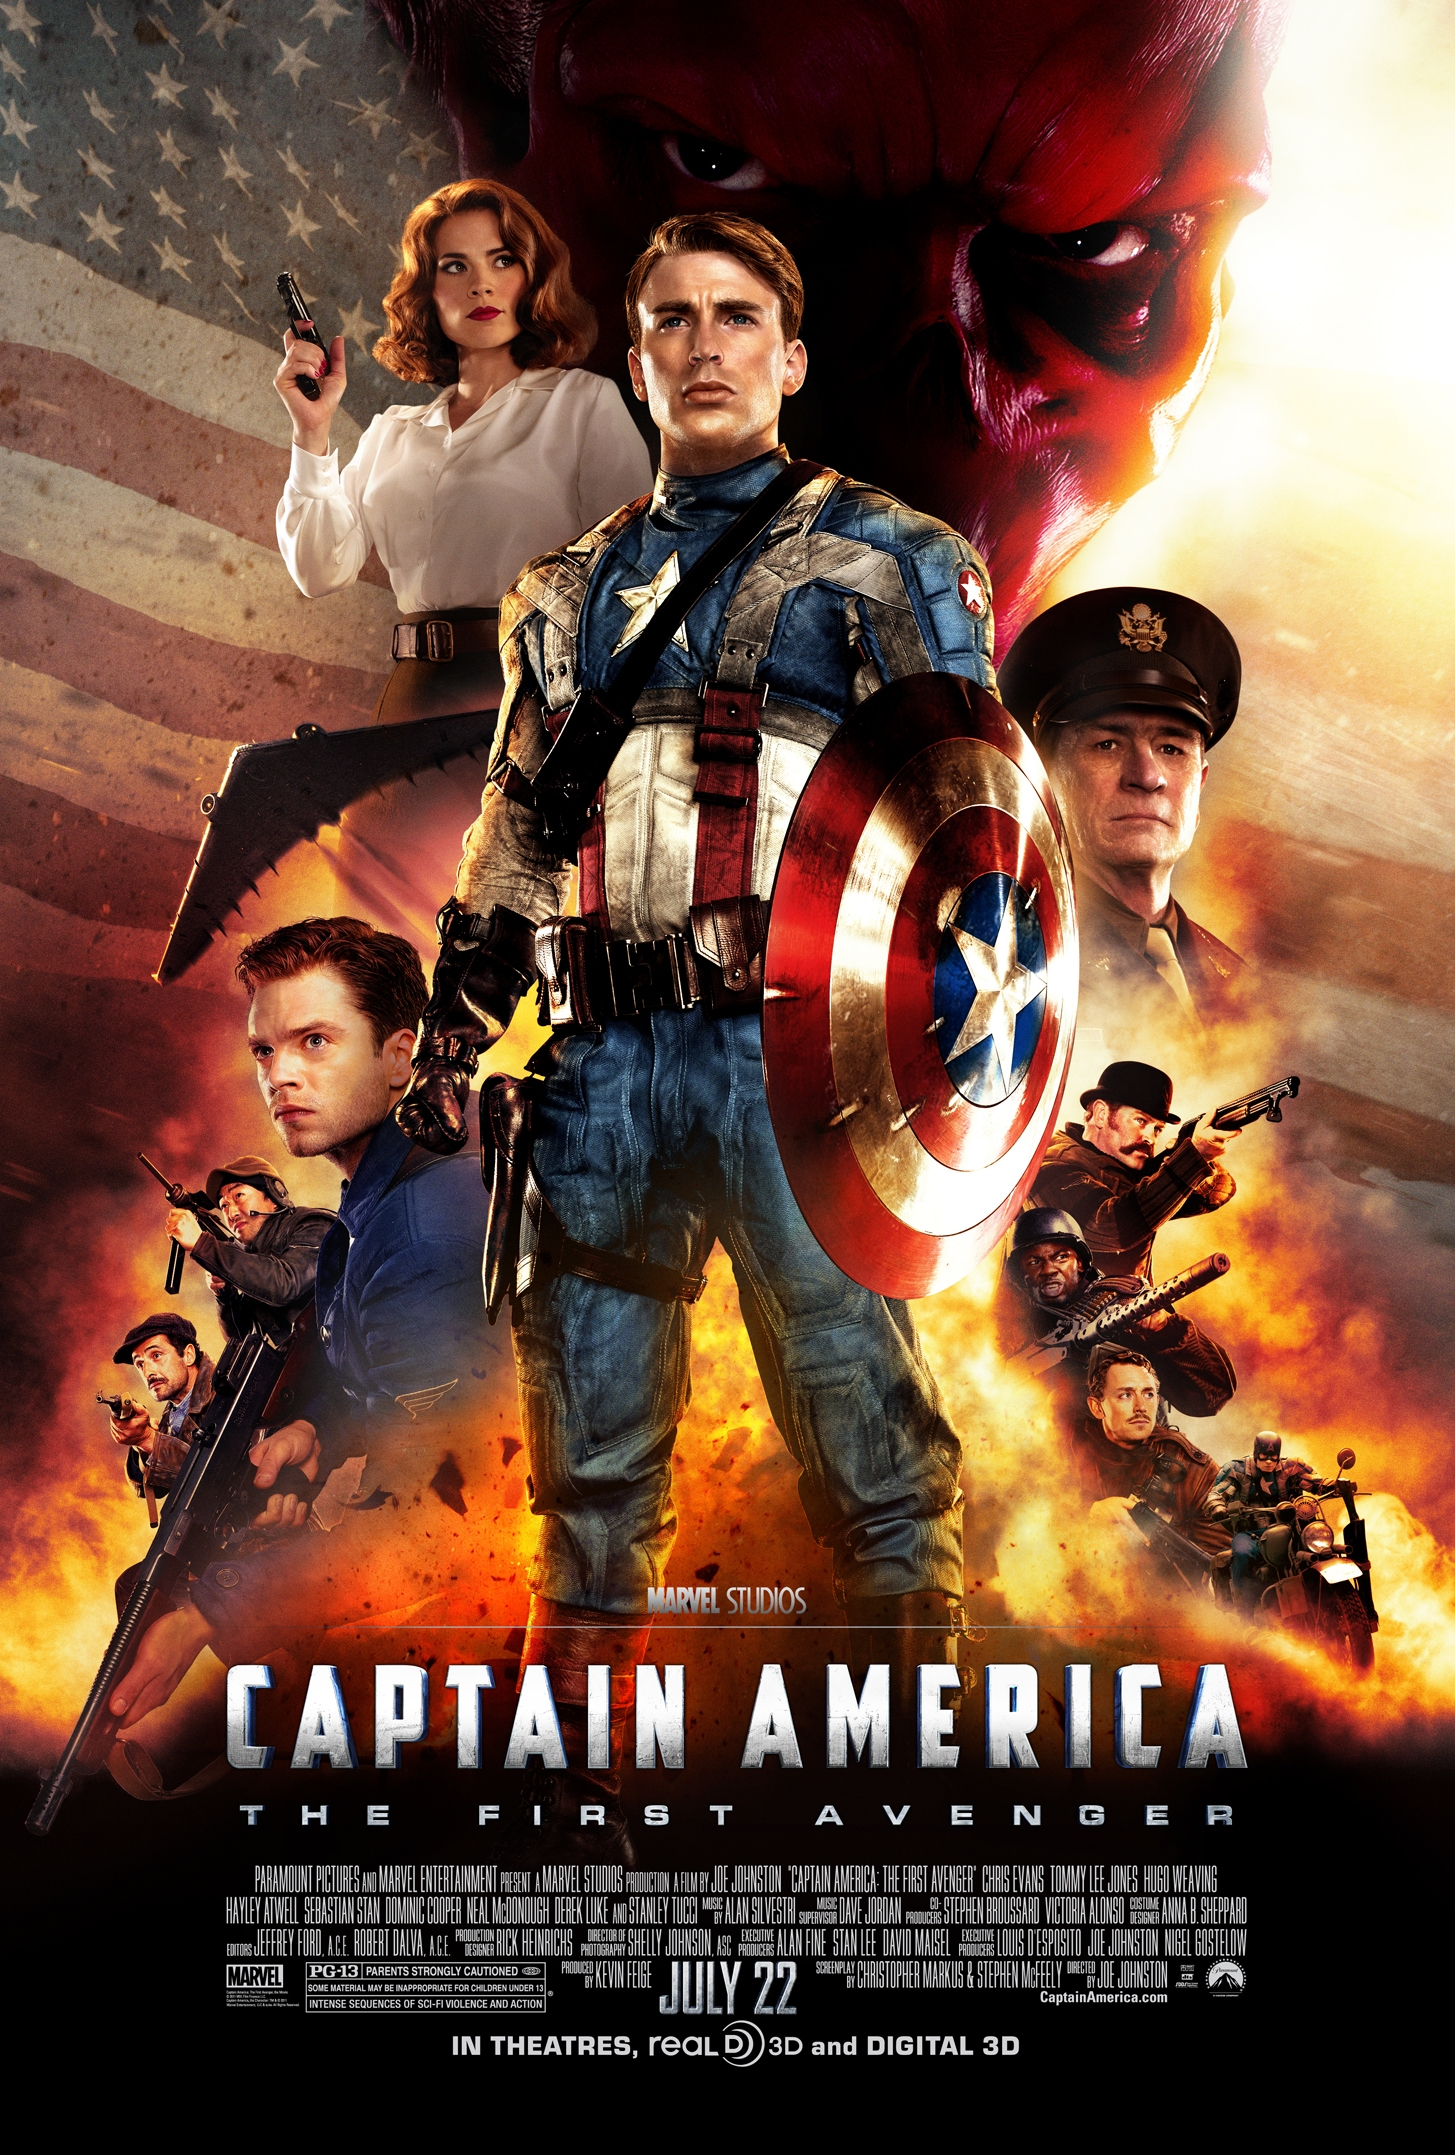 Captain america the first avenger 2011 - Captain America The First Avenger Marvel Cinematic Universe Wiki Fandom Powered By Wikia